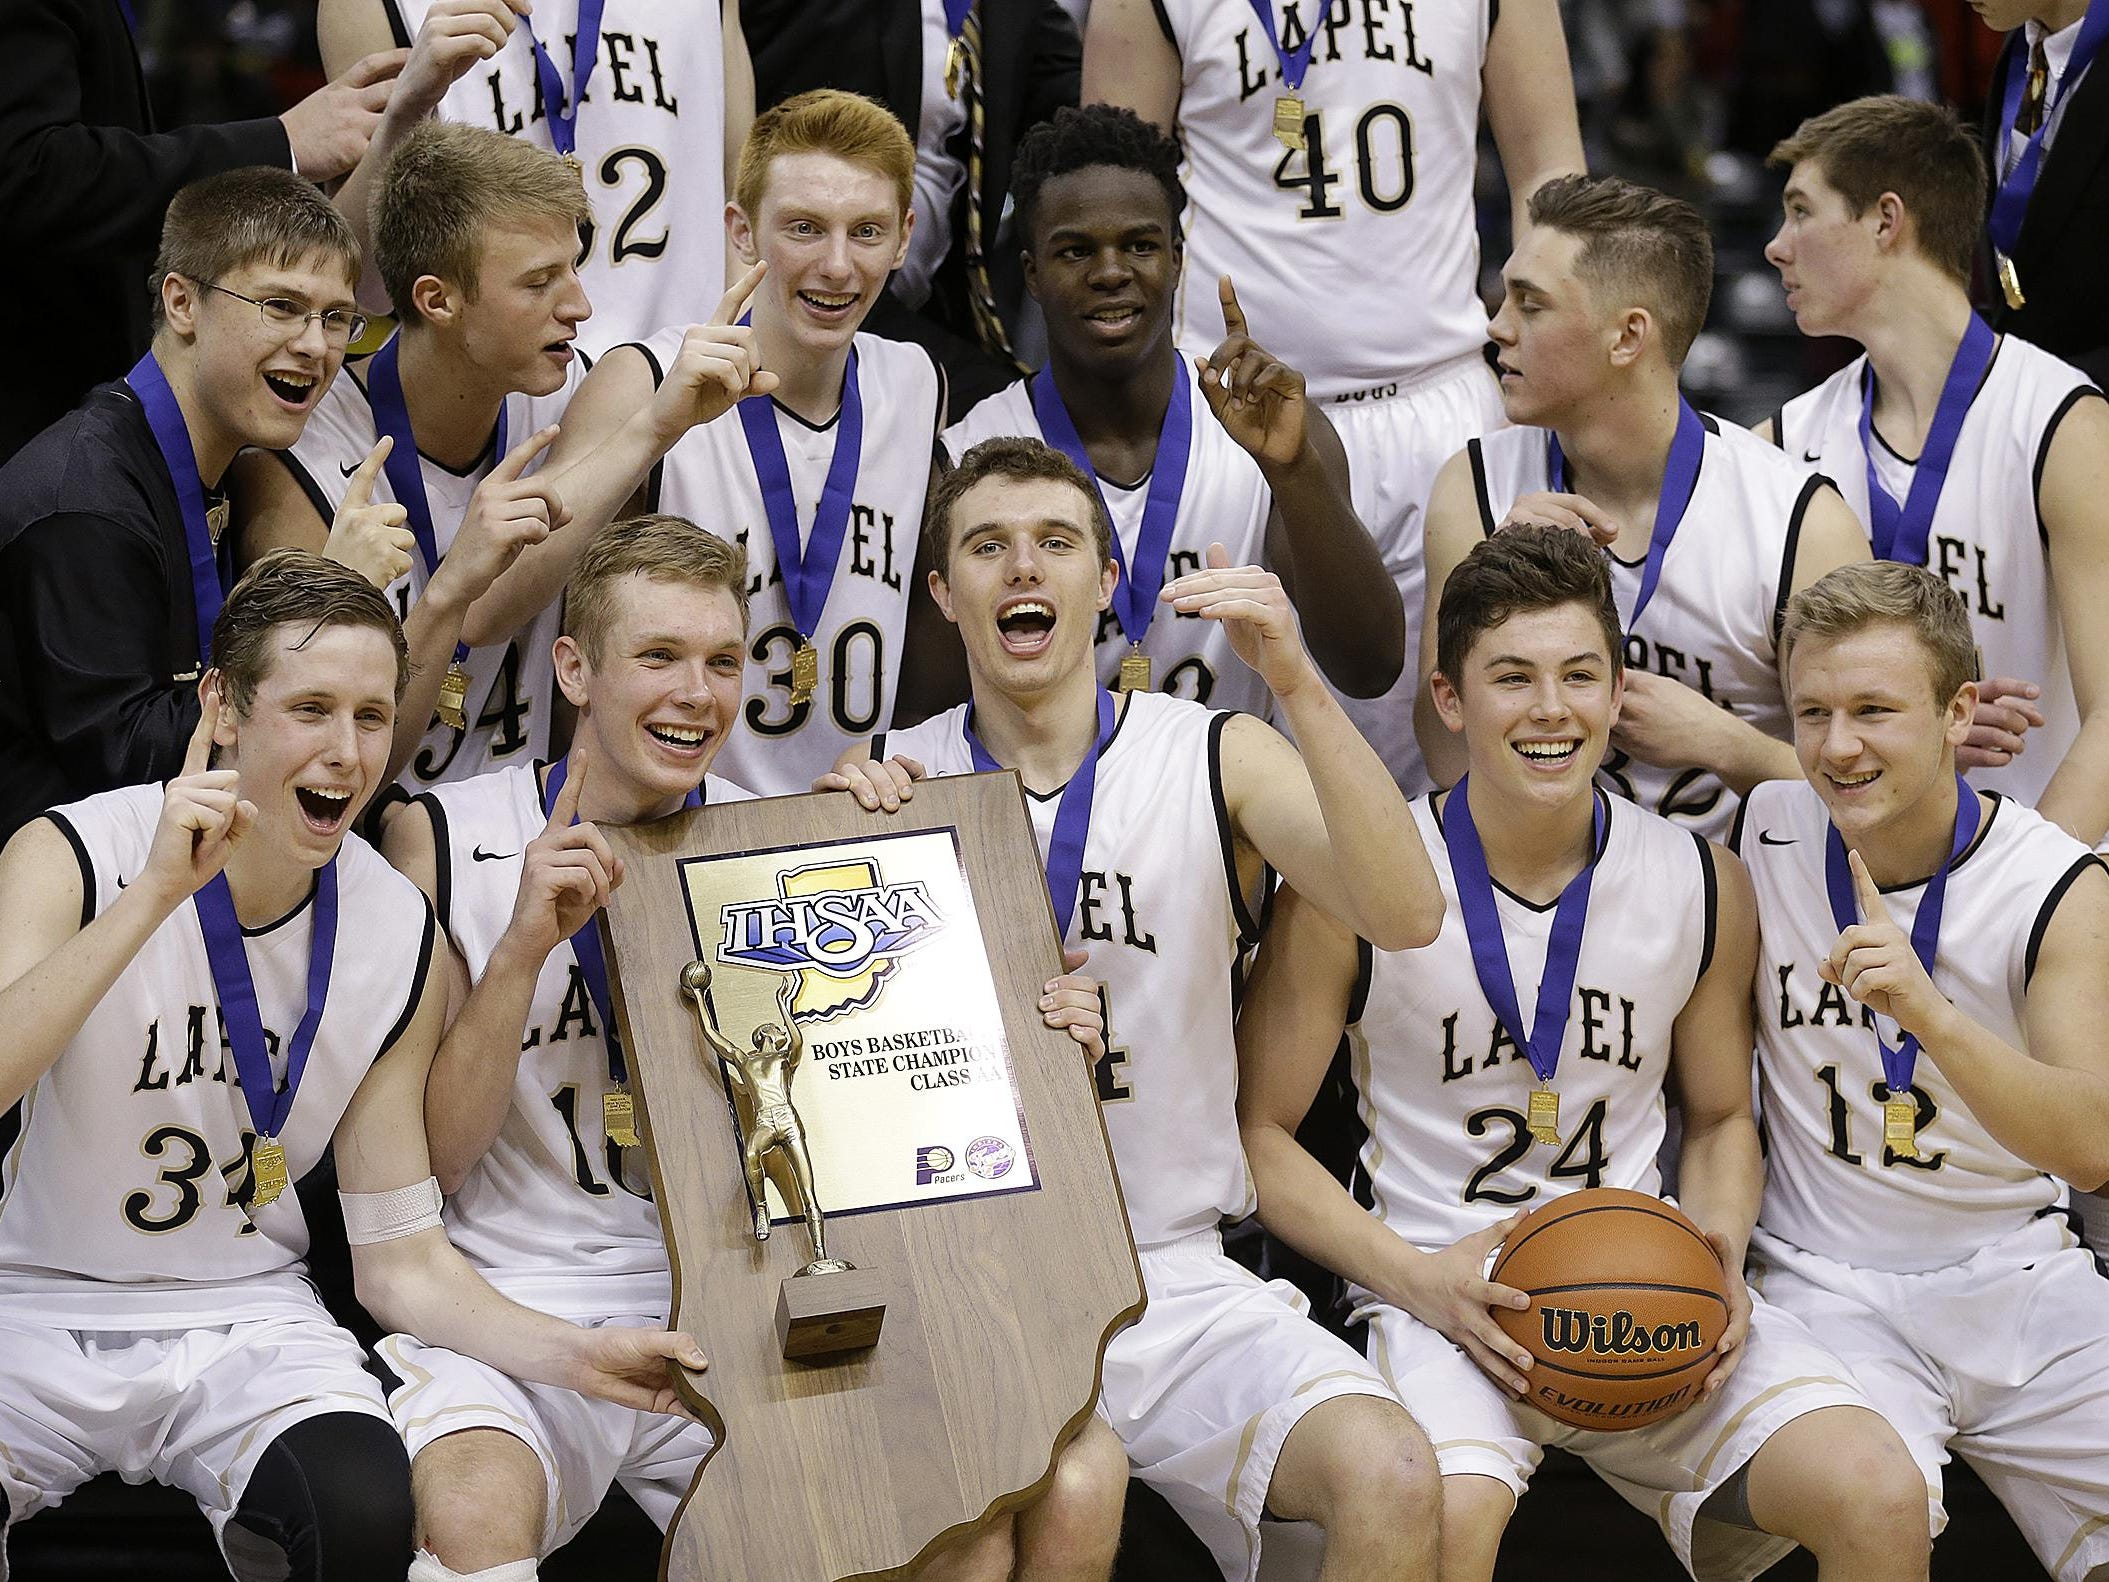 The Lapel Bulldogs celebrate their win in the IHSAA 2A Boys Basketball State Final game Saturday, Mar 26, 2016, afternoon at Bankers Life Fieldhouse. The Lapel Bulldogs defeated the Howe Hornets 59-37.